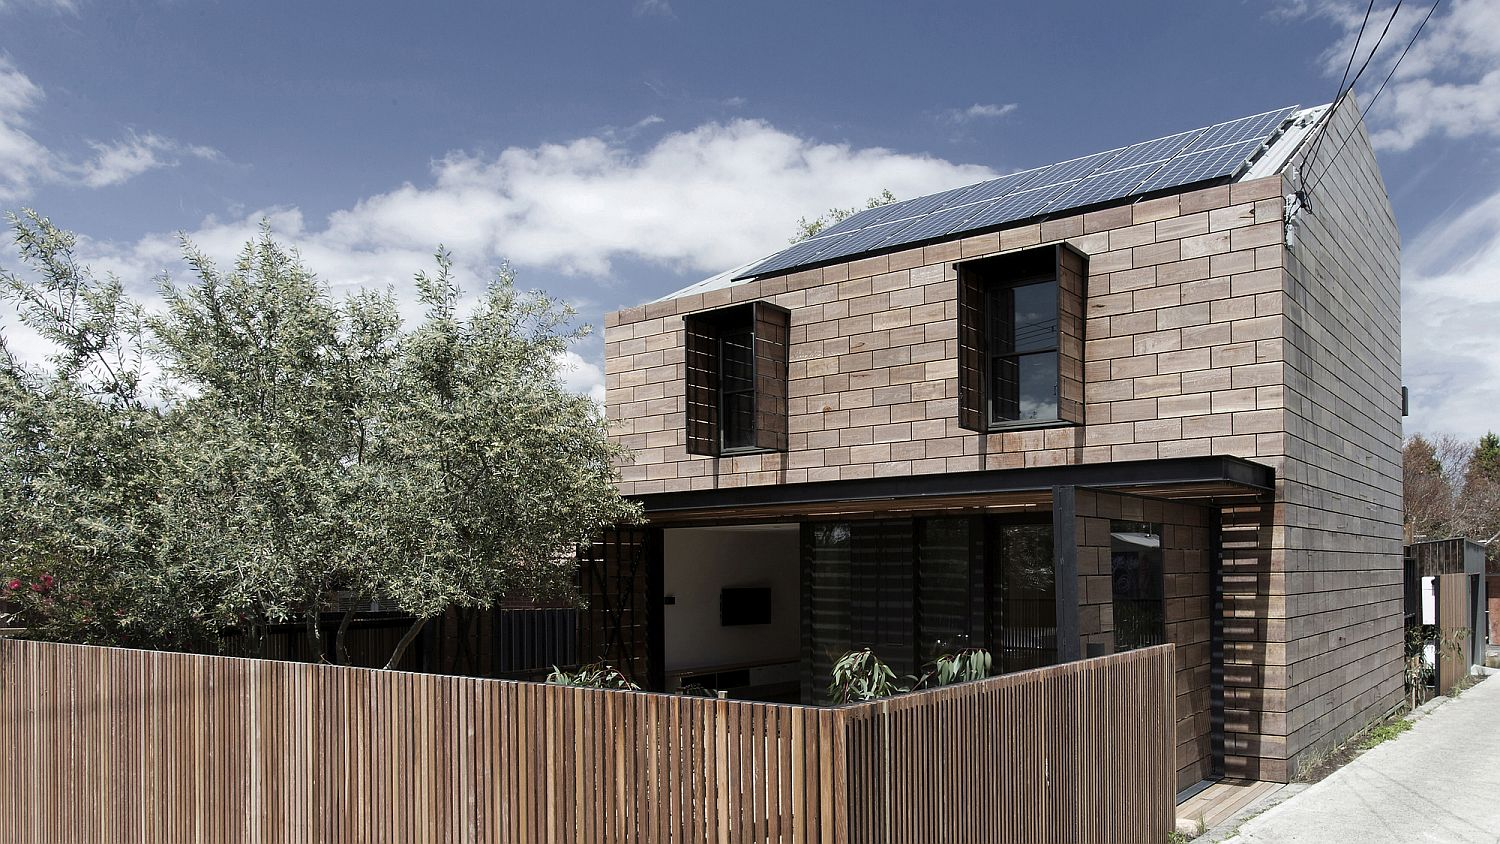 Adaptable street facade of the home with operable blinds